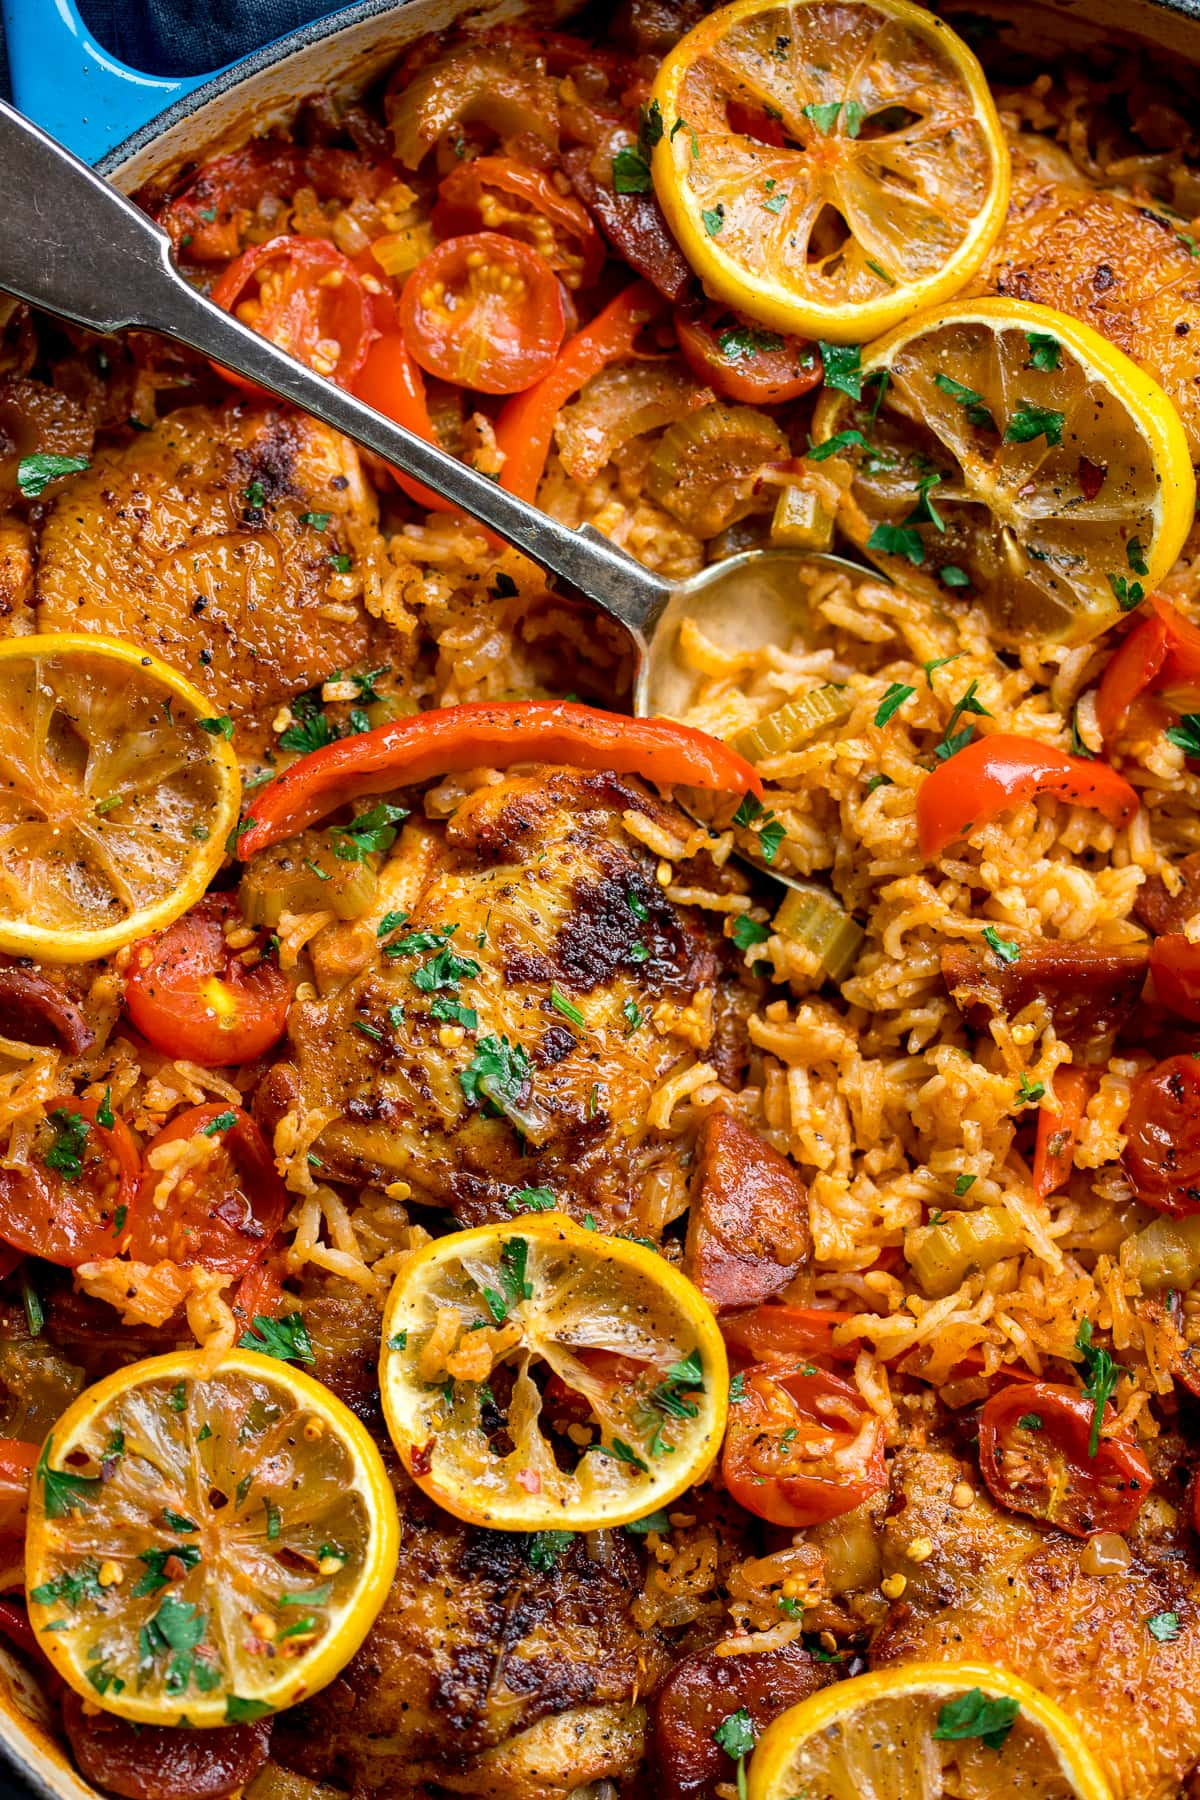 Overhead of Spanish chicken and rice with lemon slices, tomato and red peppers in a blue pan